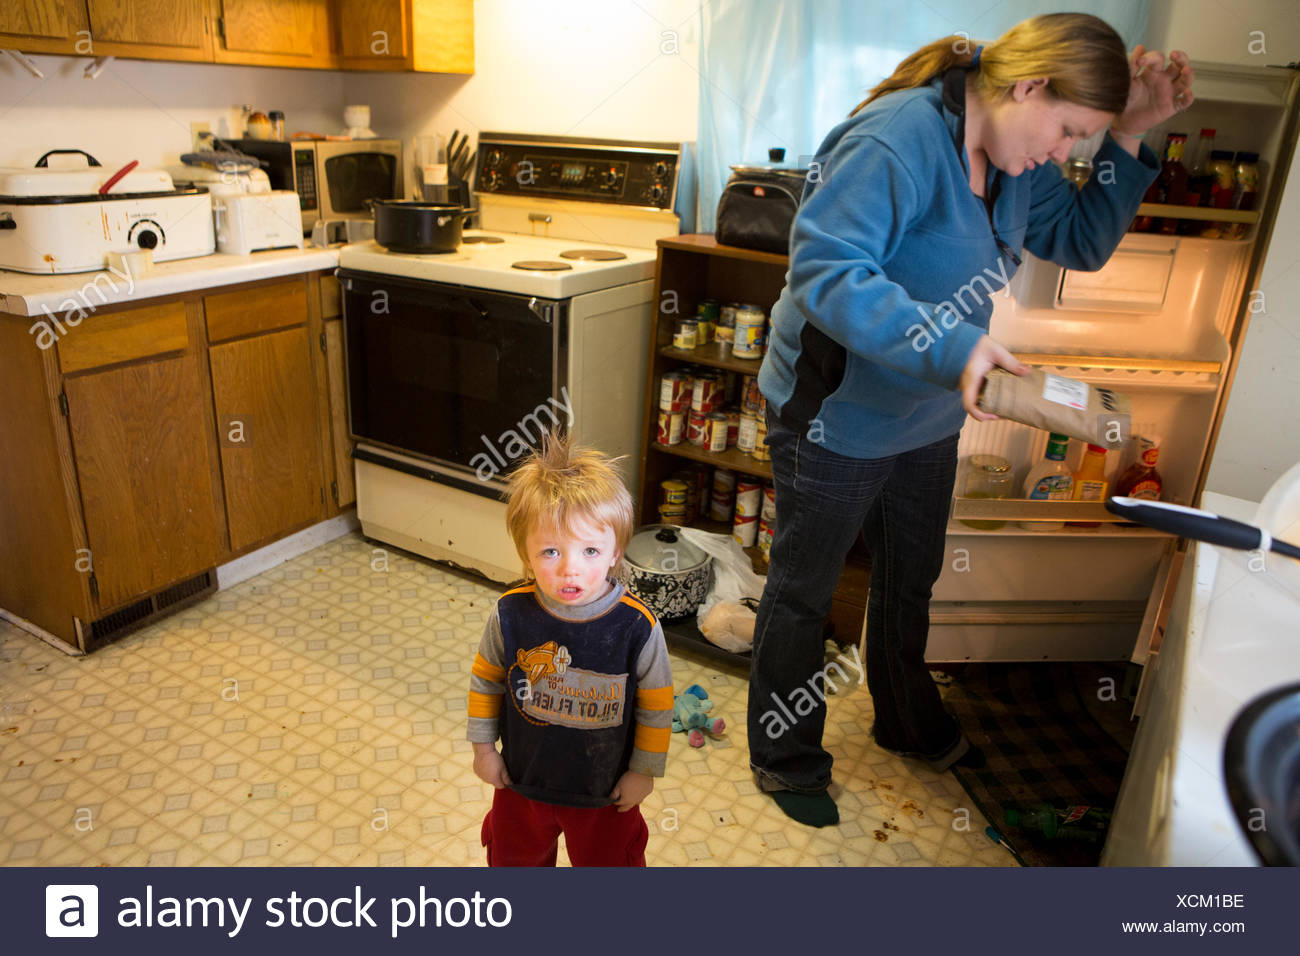 A woman, classified as food insecure, struggles to feed her children. - Stock Image